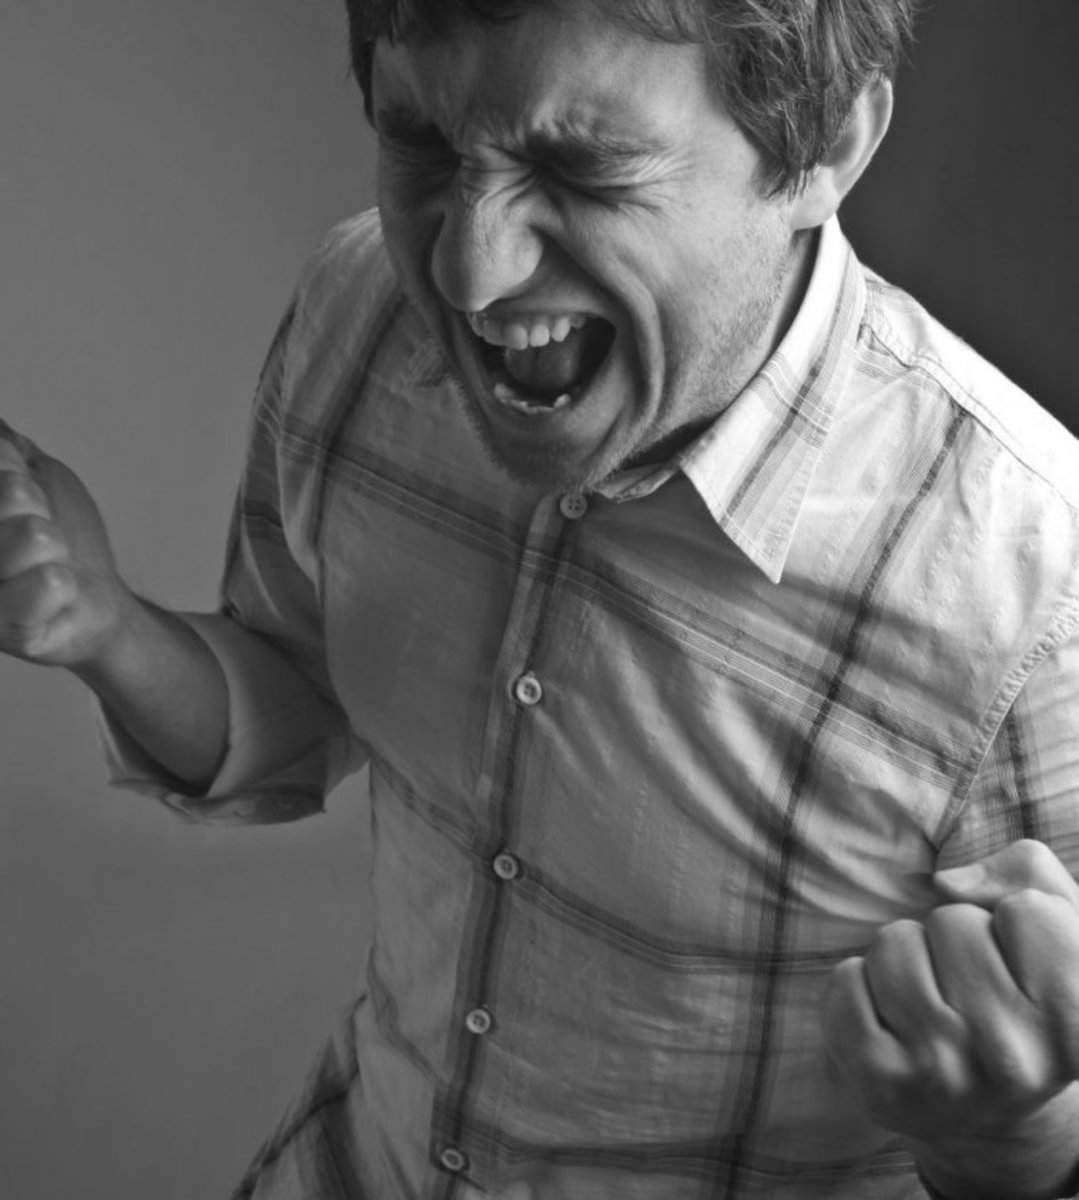 Does he snap at everything you say and do? His frustration in your relationship could be driven by malicious factors.